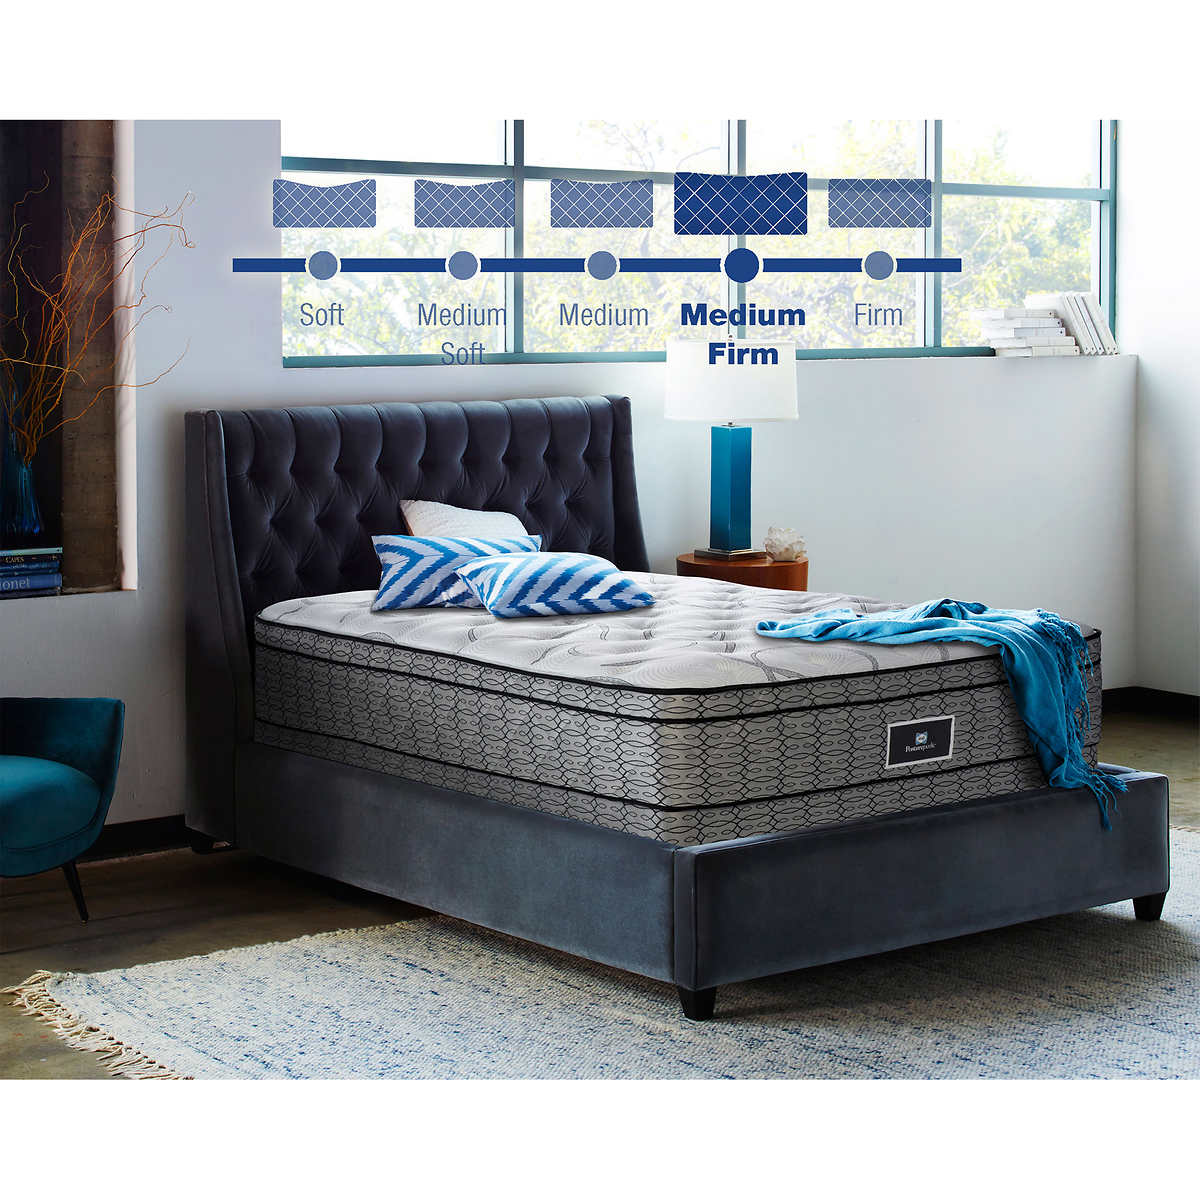 Sealy Posturepedic Sydney Queen Mattress